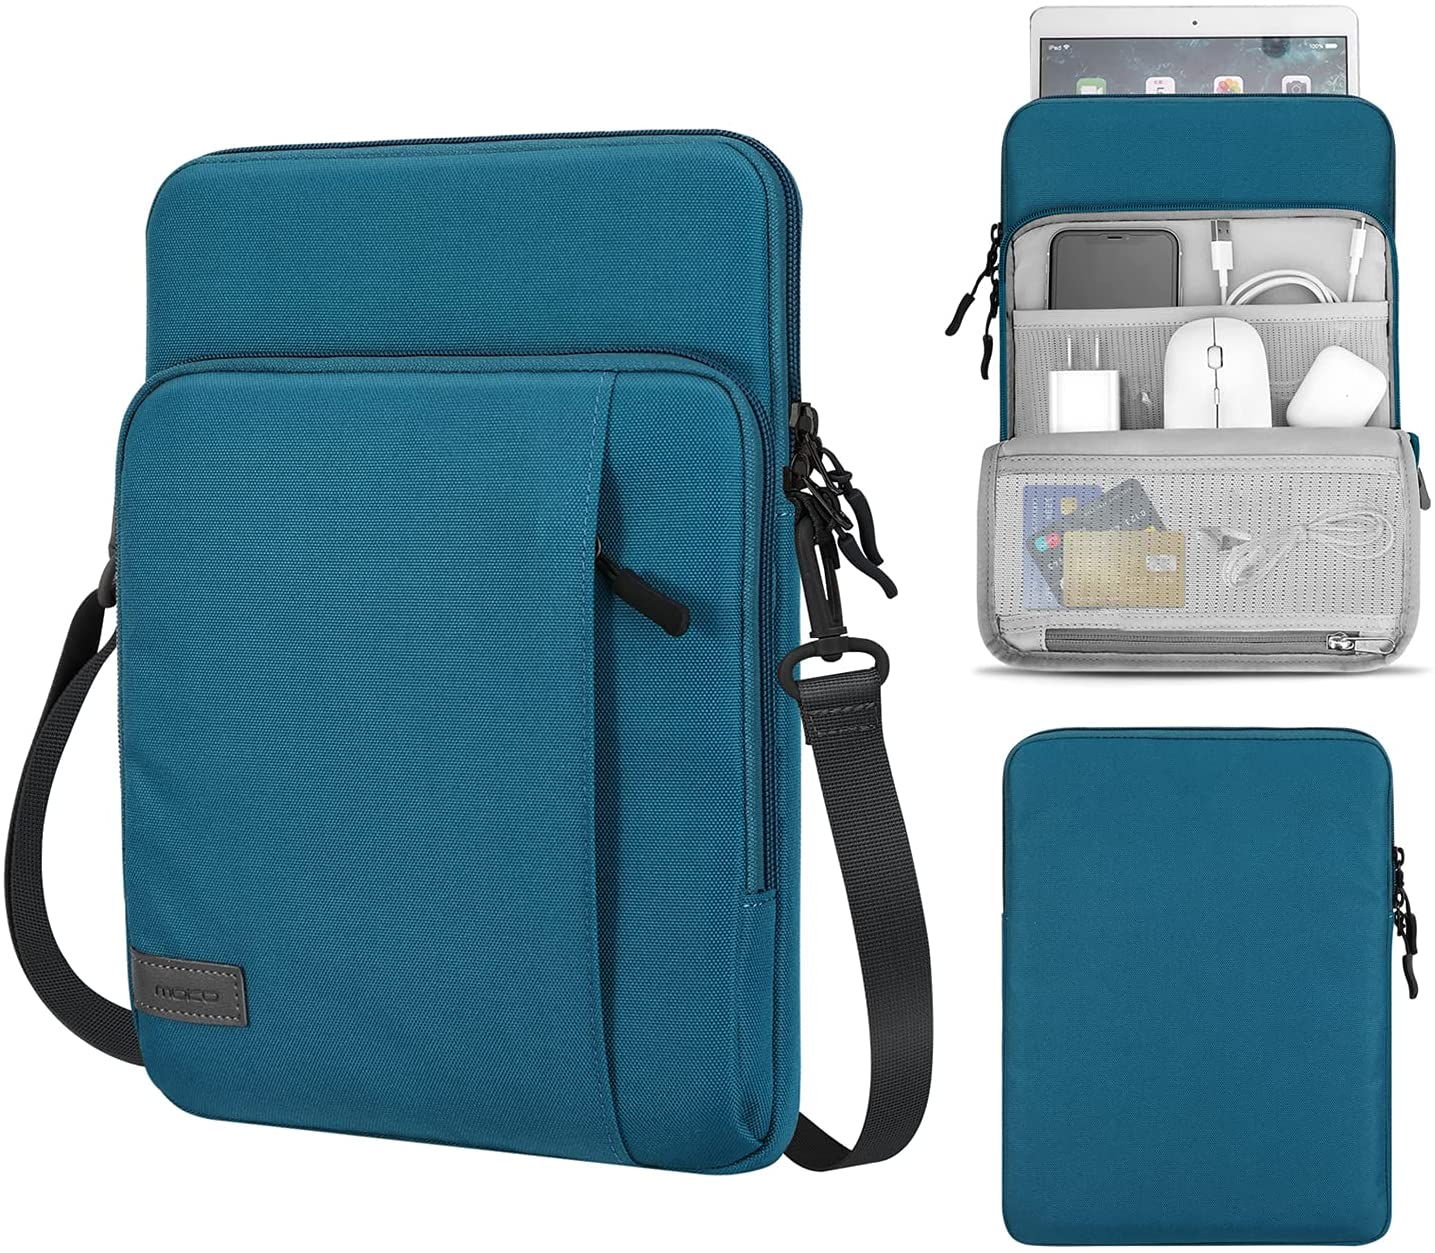 MoKo Sleeve Bag for 13.3 Inch Laptop, Carrying Pouch Portable Sleeve Case with Pocket Fits MacBook Air Retina 13.3 2018, MacBook Air 13.3 2019/2020, MacBook Pro 13.3 2020, iPad Pro 12.9 2021/2020/2018